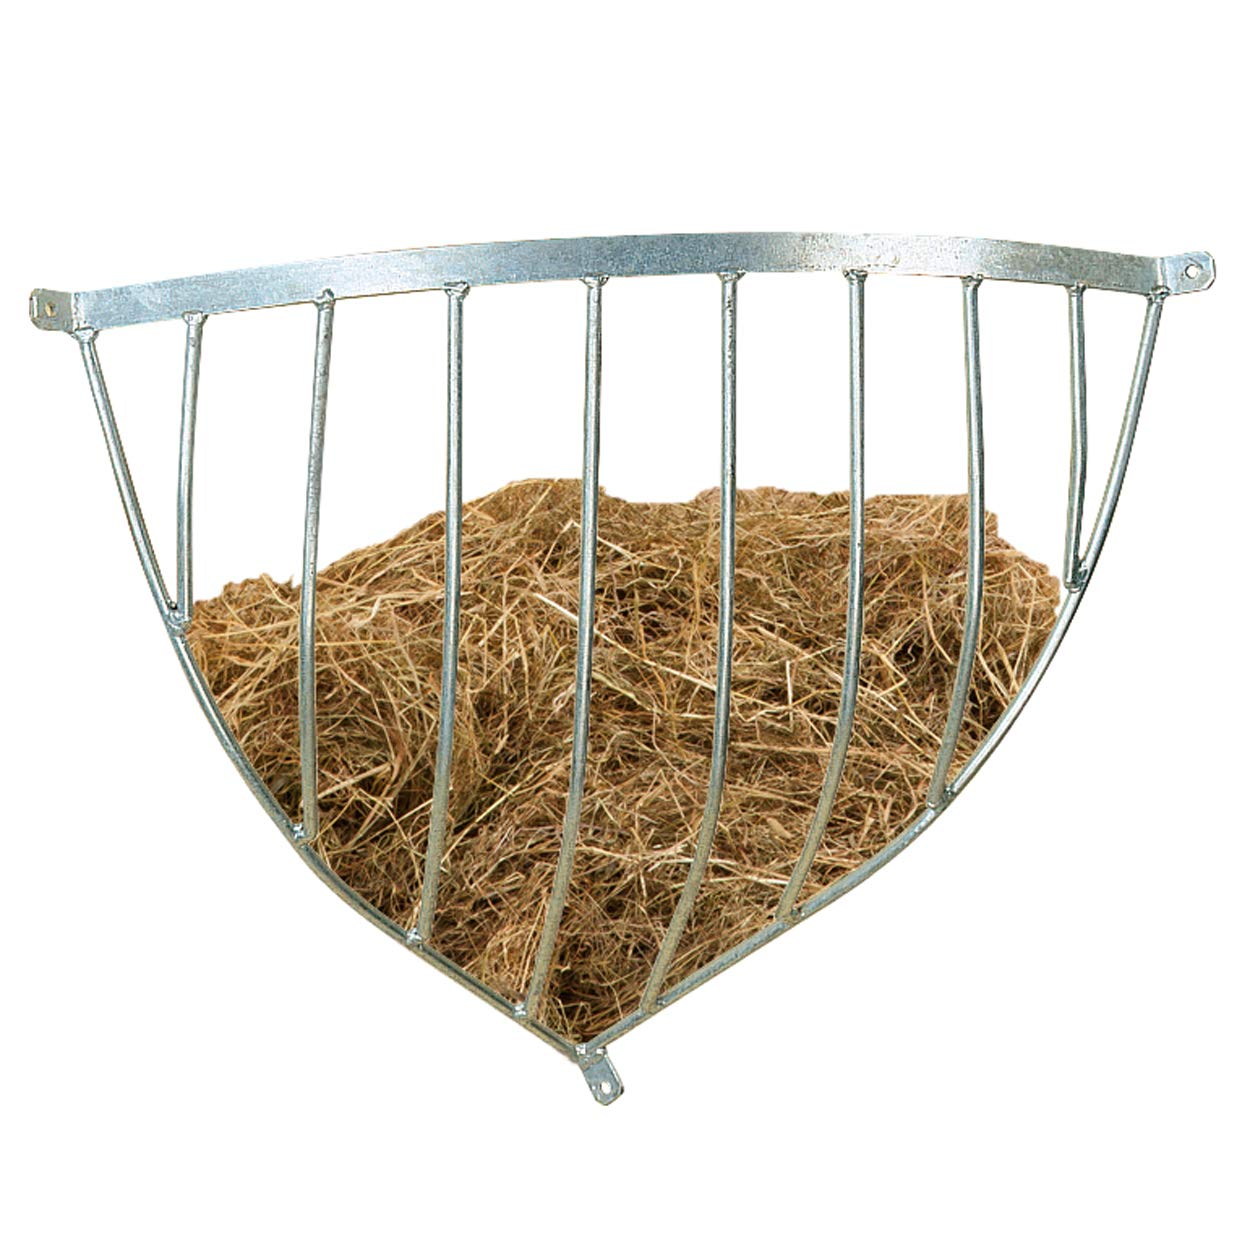 Clear One Size Clear One Size Stubbs Unisex's TR-STB0140 Hay Rack Traditional, Clear, One Size